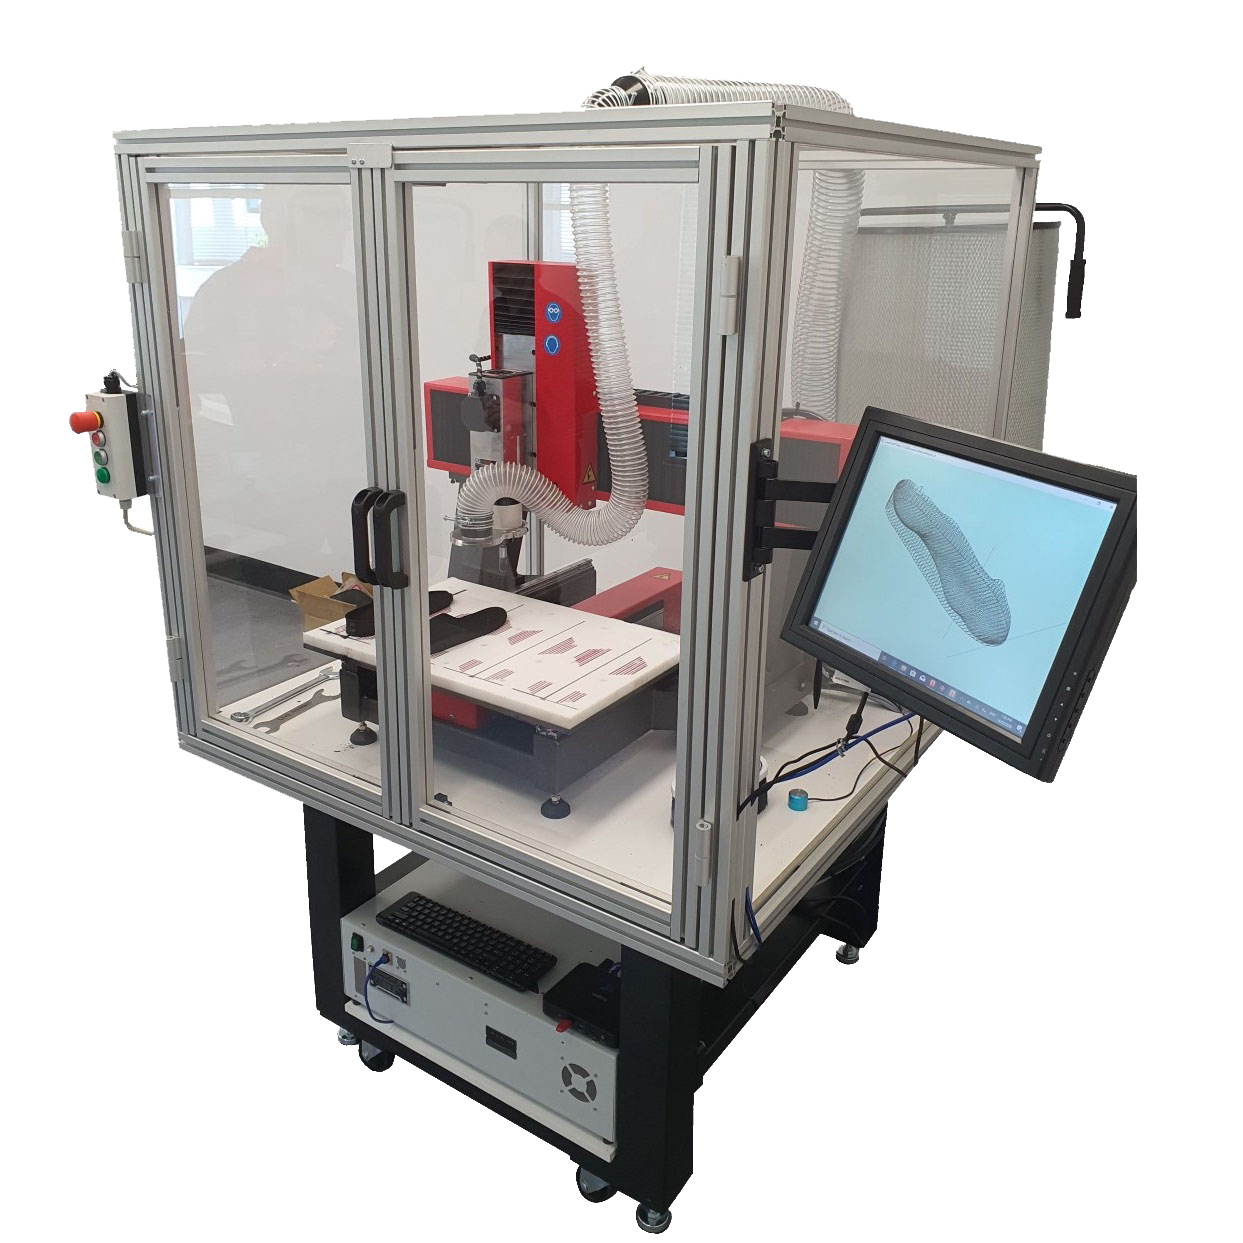 Symbiosis CNC Router Enclosure